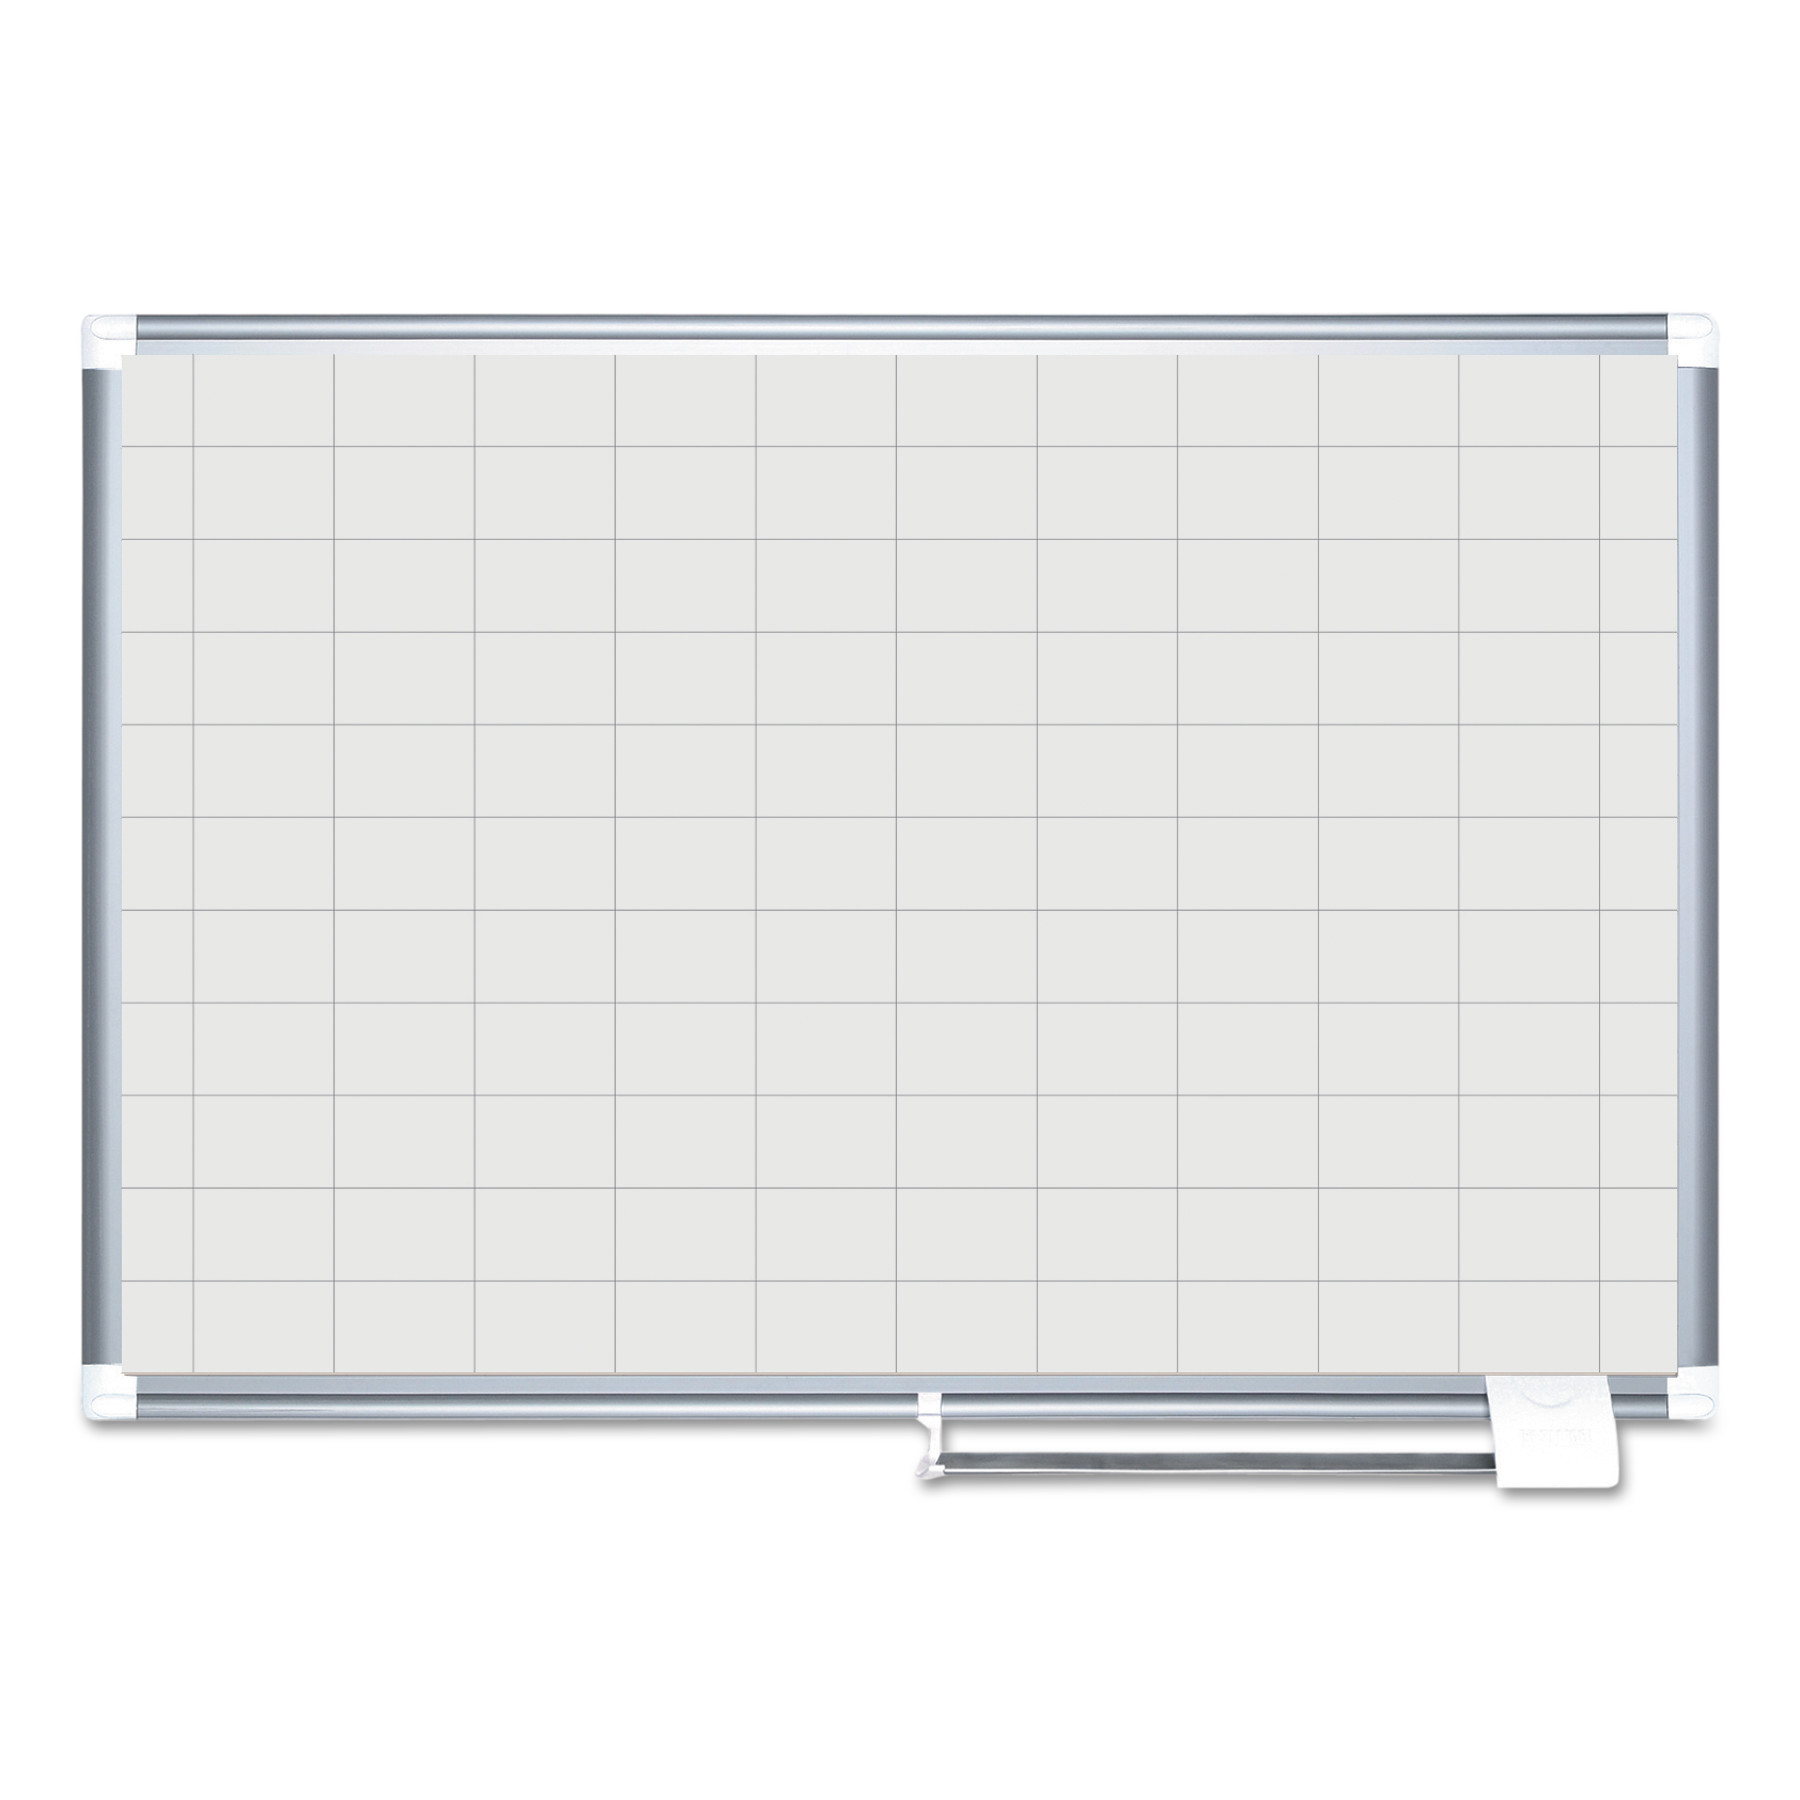 "MasterVision Grid Planning Board, 48x36, 2x3"" Grid, White Silver by BI-SILQUE VISUAL COMMUNICATION PRODUCTS INC"